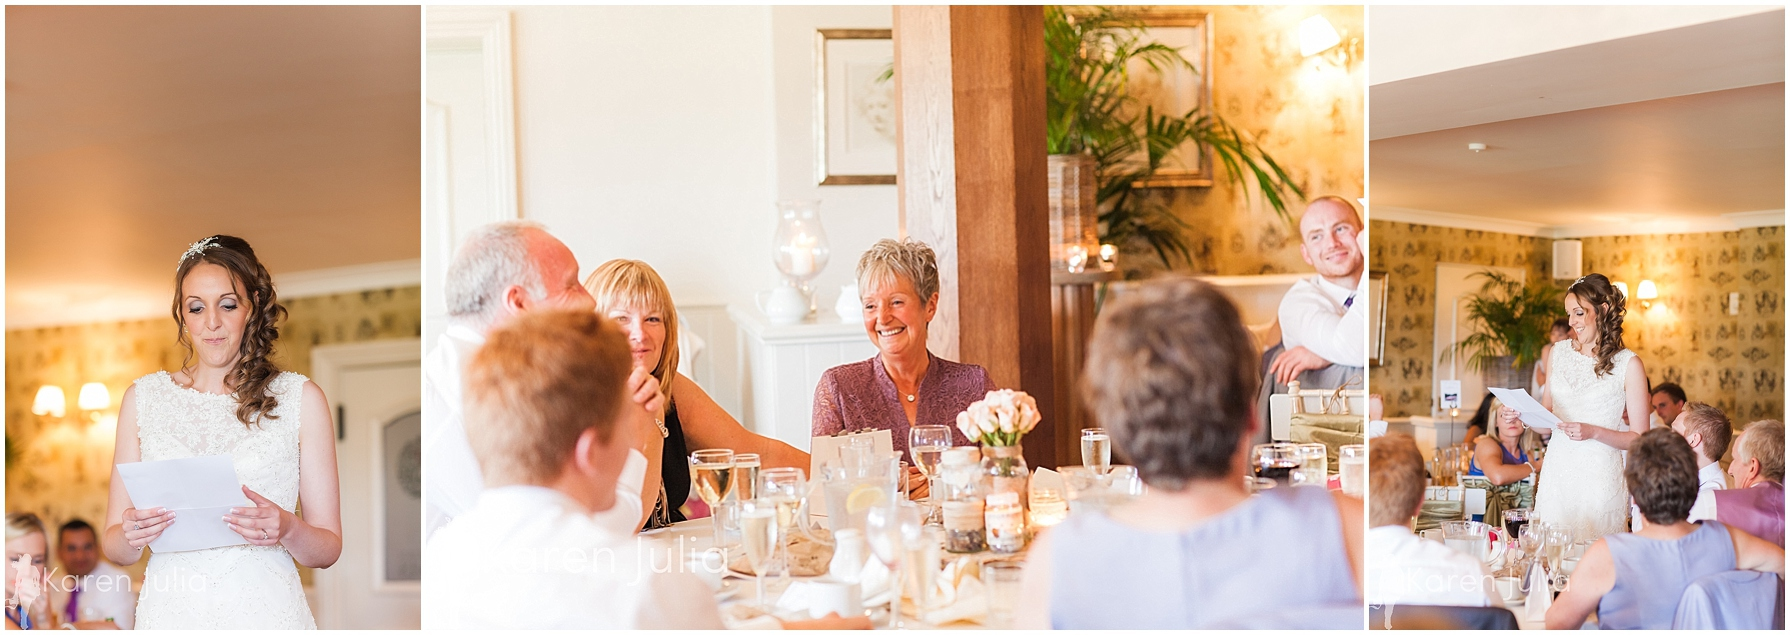 Shireburn-Arms-Wedding-Photography-42